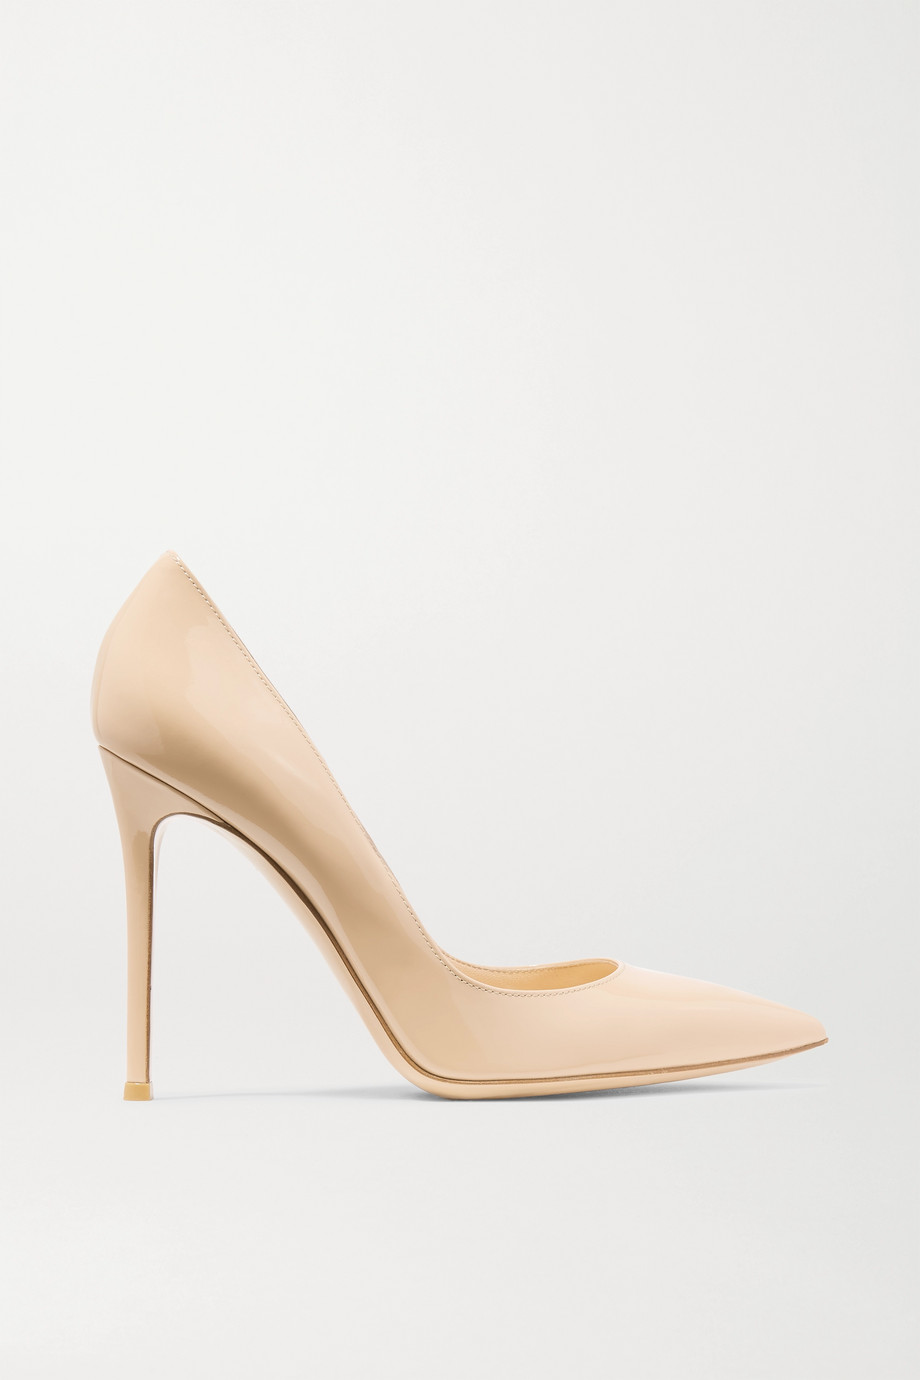 Gianvito Rossi 105 Patent-Leather Pumps, Neutral, Women's US Size: 6, Size: 36.5